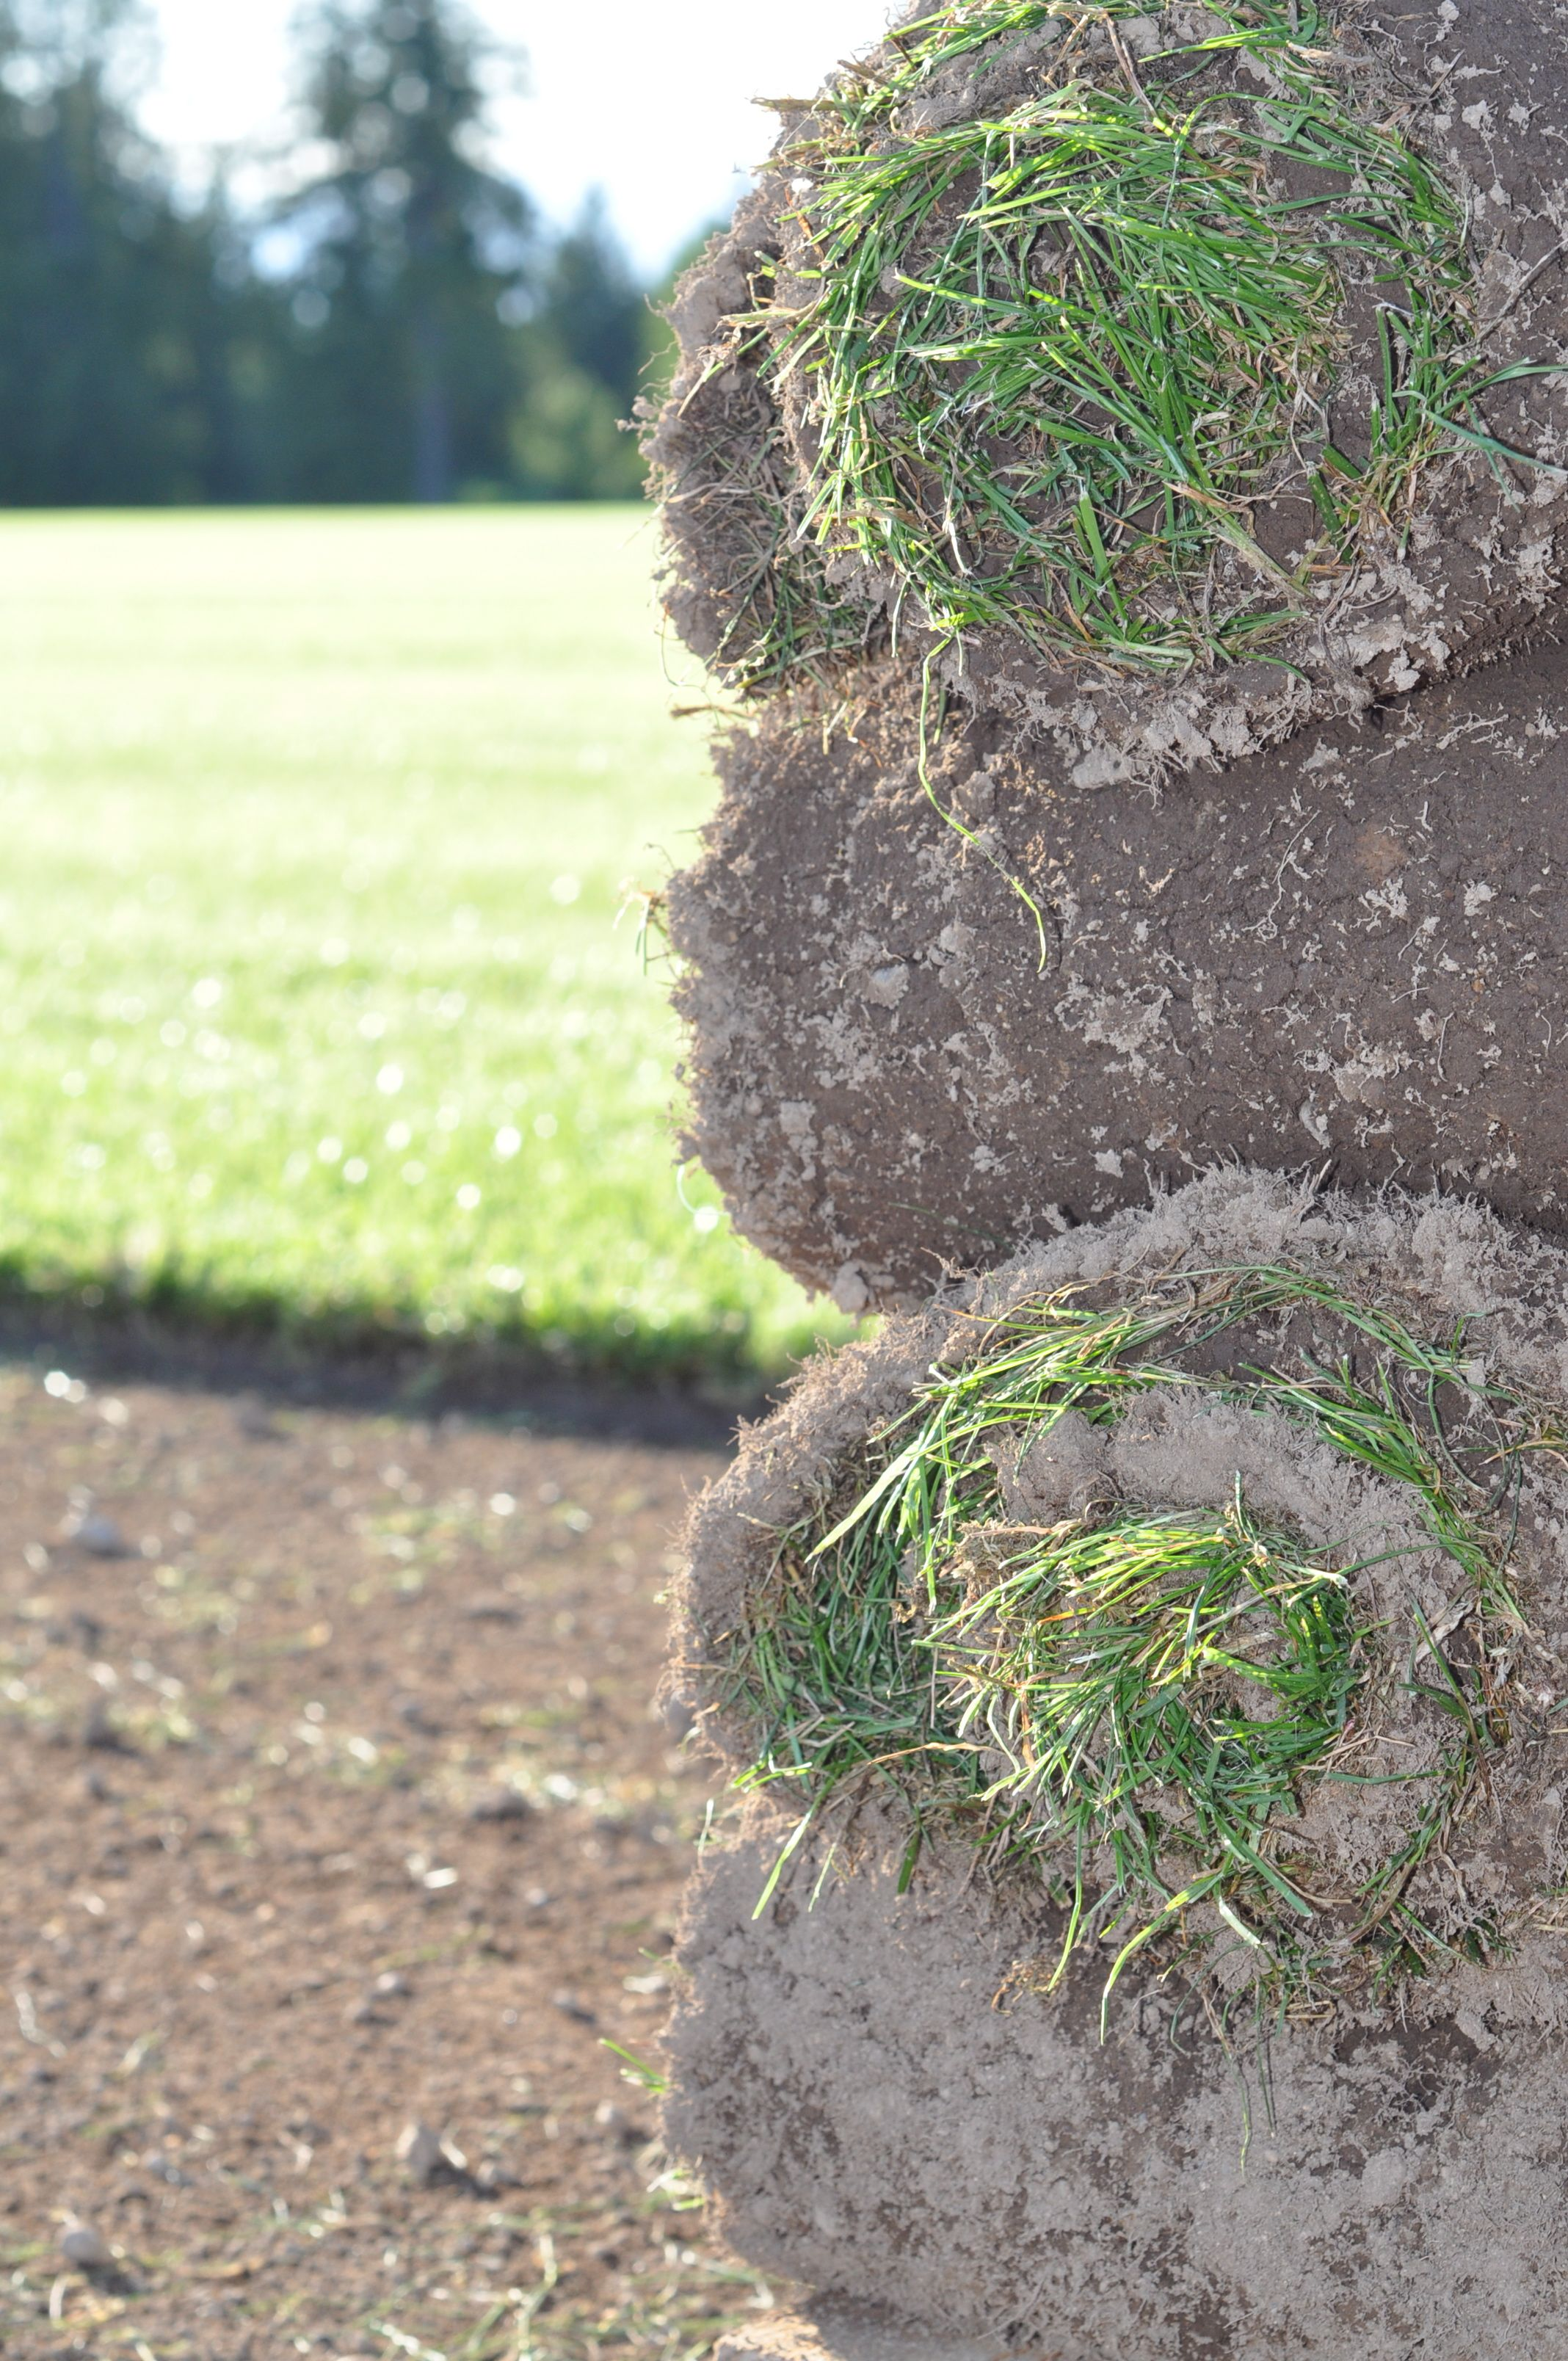 Quality Topsoil Sod Grass For Sale In Bc Grass For Sale Sod Grass Turf